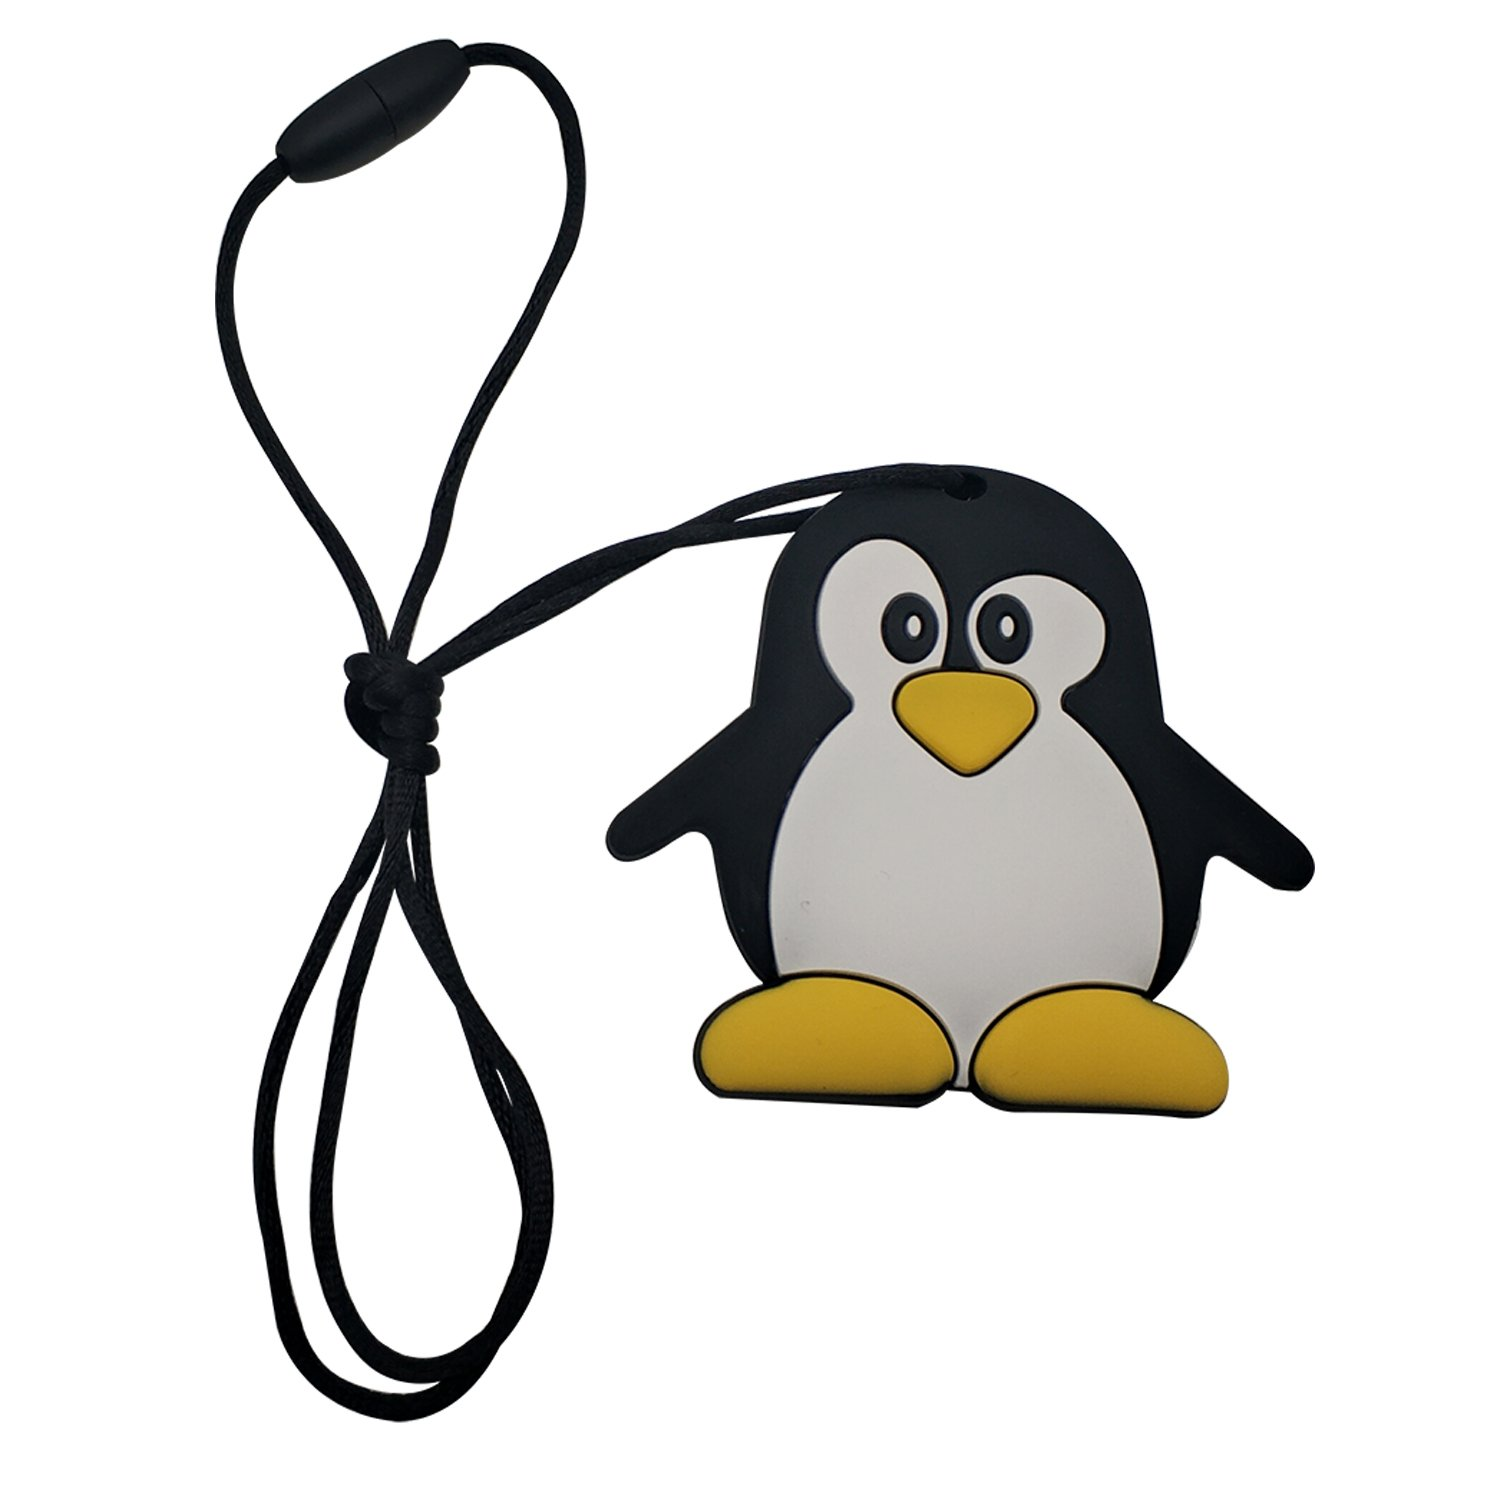 Inchant Chewable Penguin Silicone Teething Pendant Toy BPA /& Phthalates Free Gum Massager Teether Necklace FDA Compliant Soft Nursing Necklace For Baby And Toddler